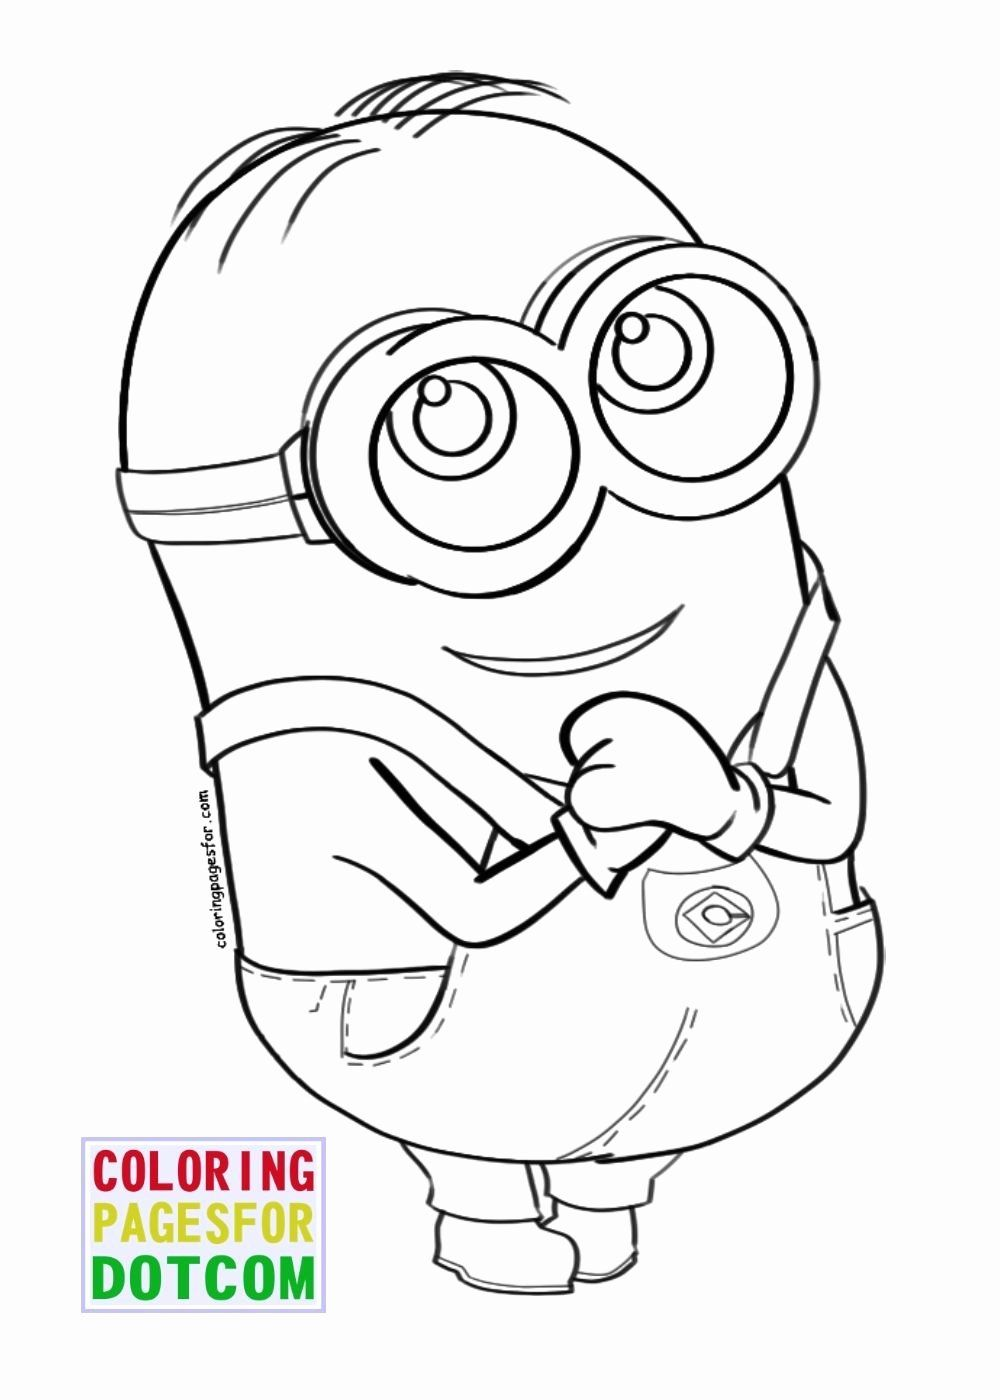 Animals Coloring Book Pdf Free Download Best Of Coloring Pages Minions Coloring Book Pdf S Minion Coloring Pages Minions Coloring Pages Coloring Pages To Print